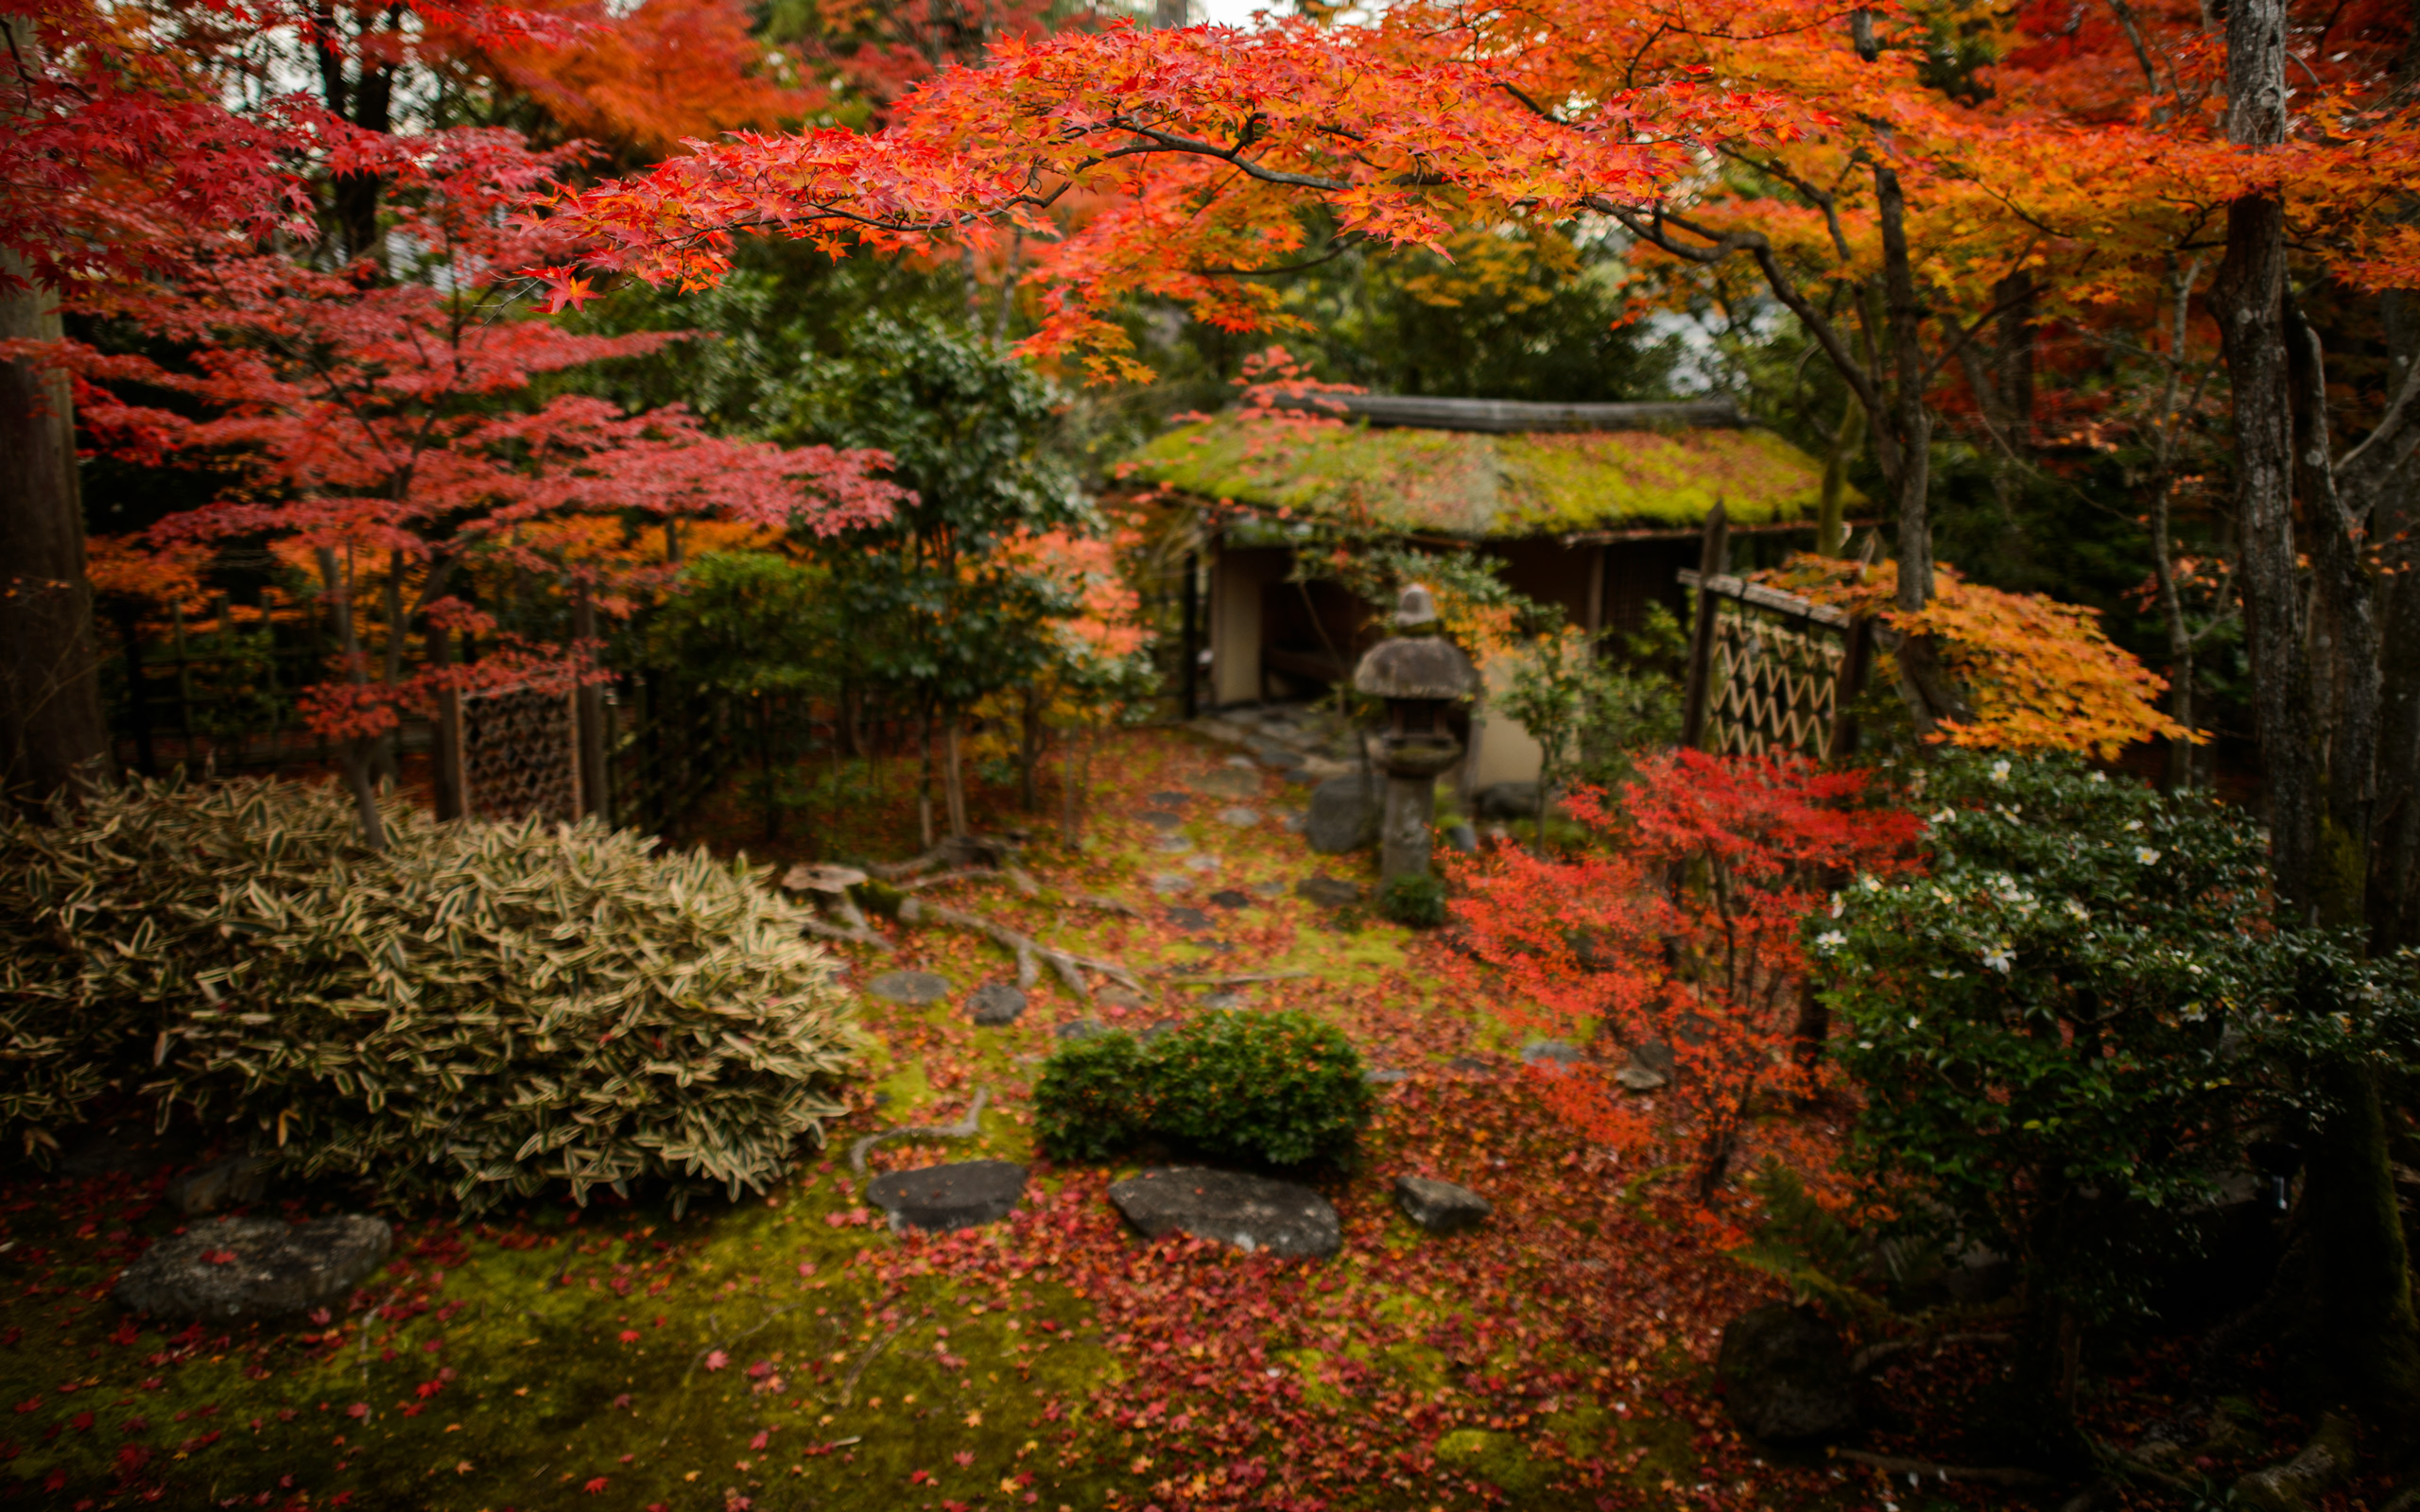 Japan Fall Colors Wallpaper Jeffrey Friedl S Blog 187 Tea And Sweets Among The Fall